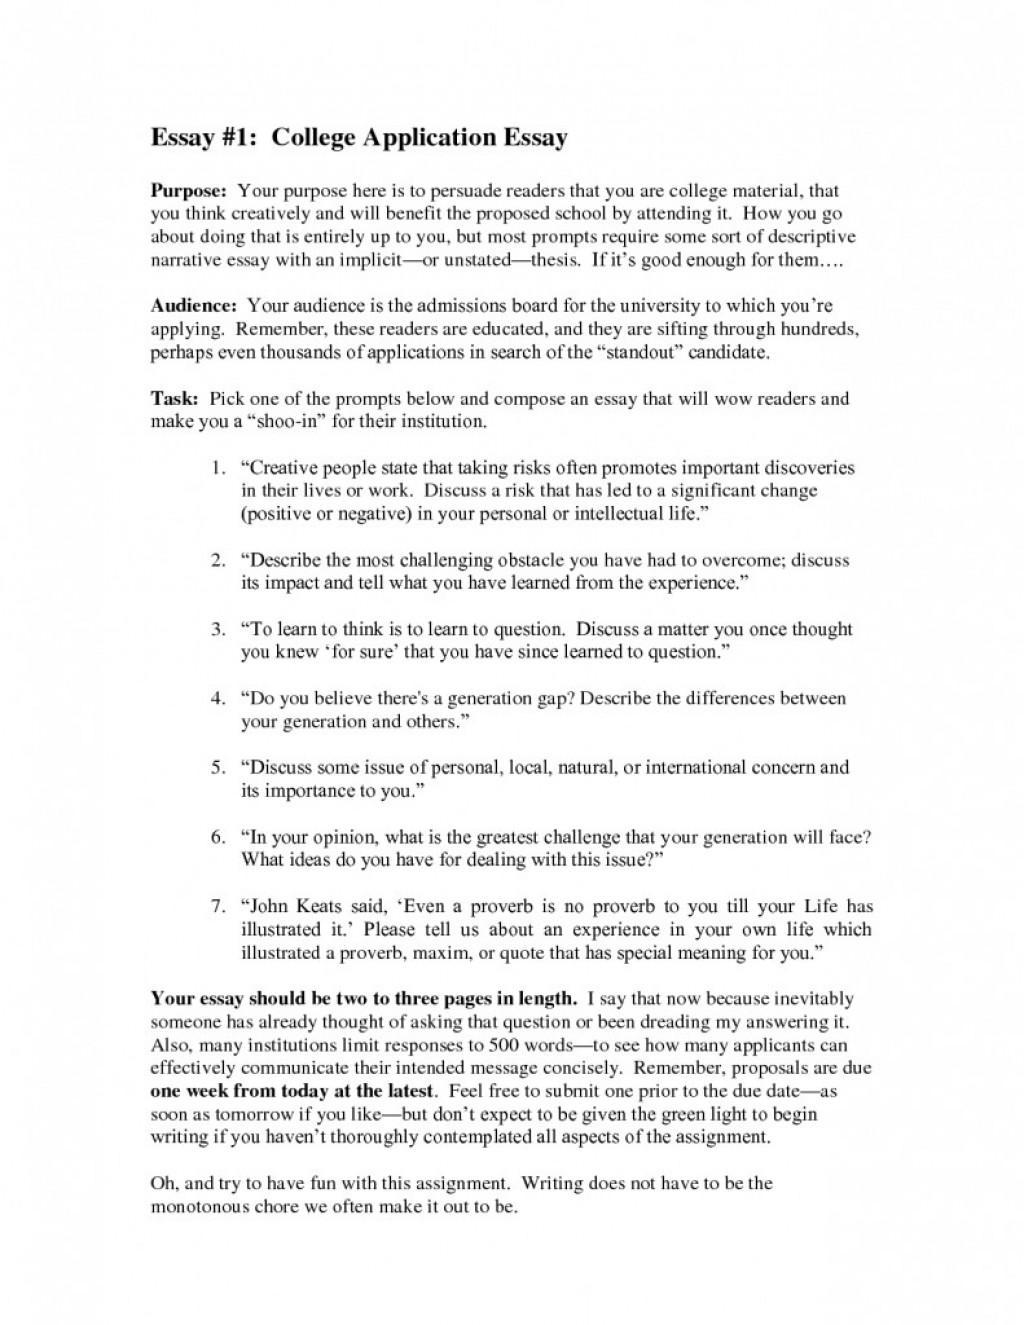 018 College Prompt Essay Examples Example Application Unique 1 Prompts Large